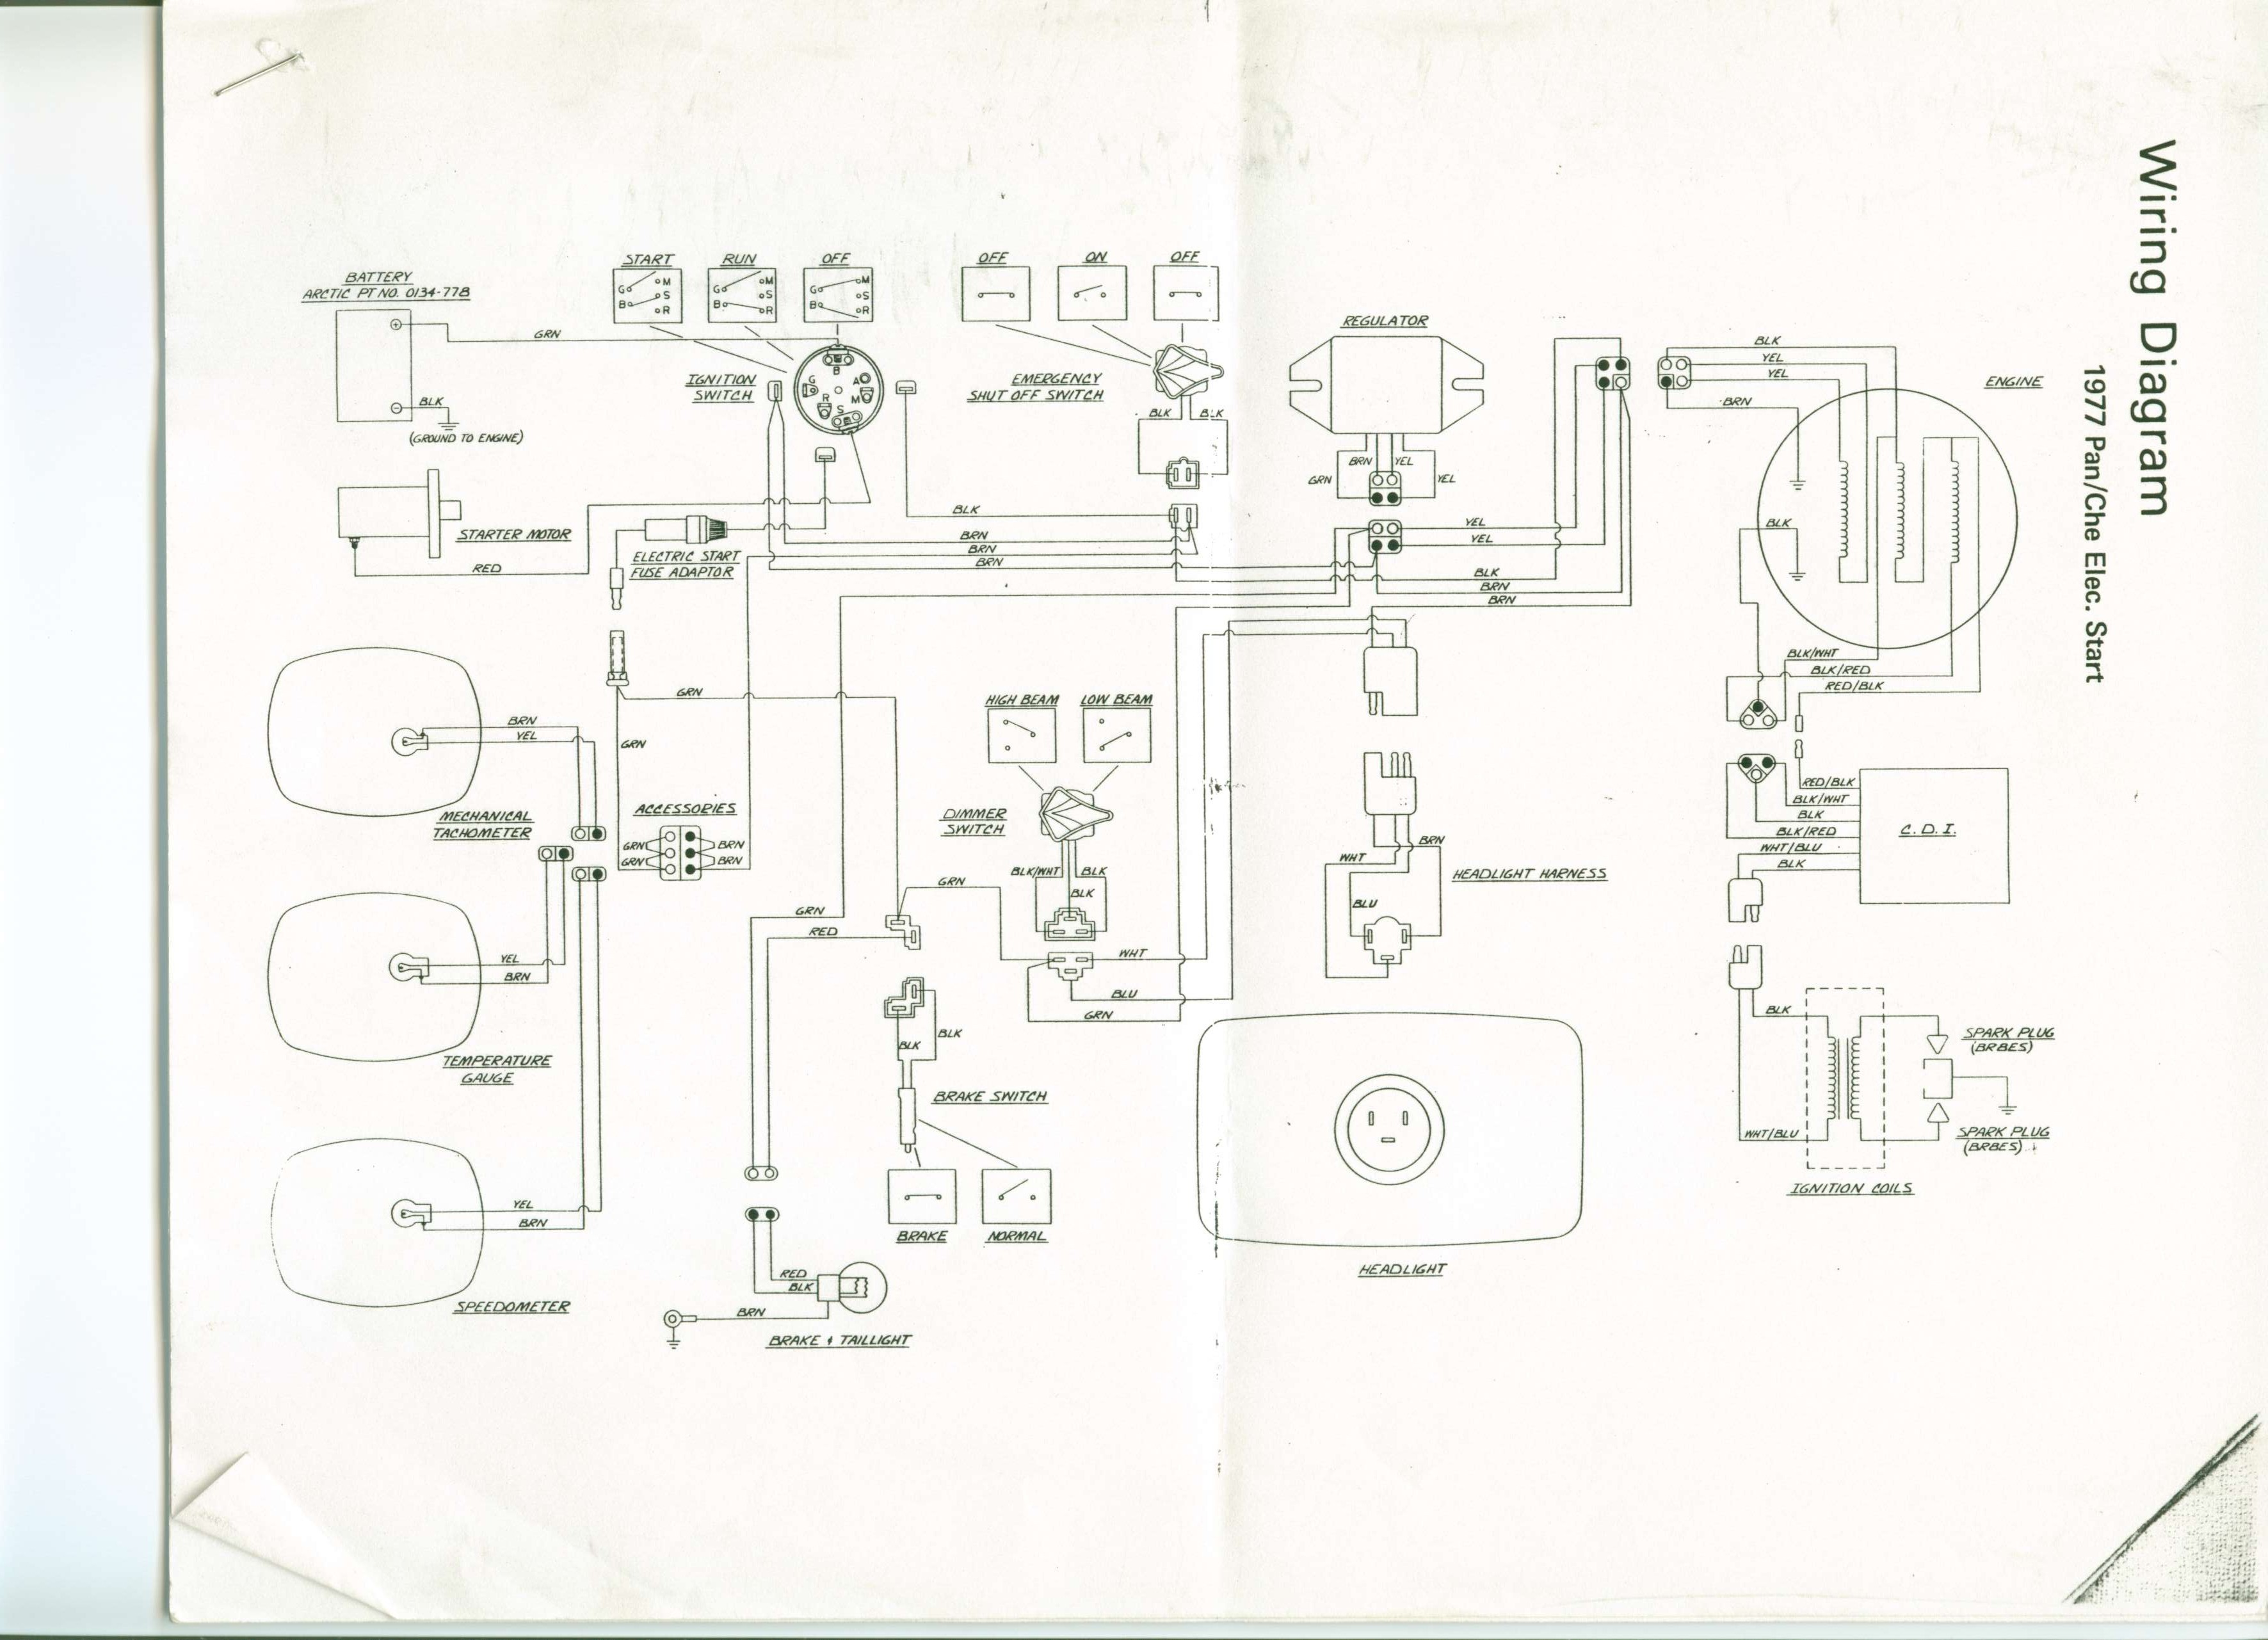 1973 arctic cat panther 440 wiring diagram